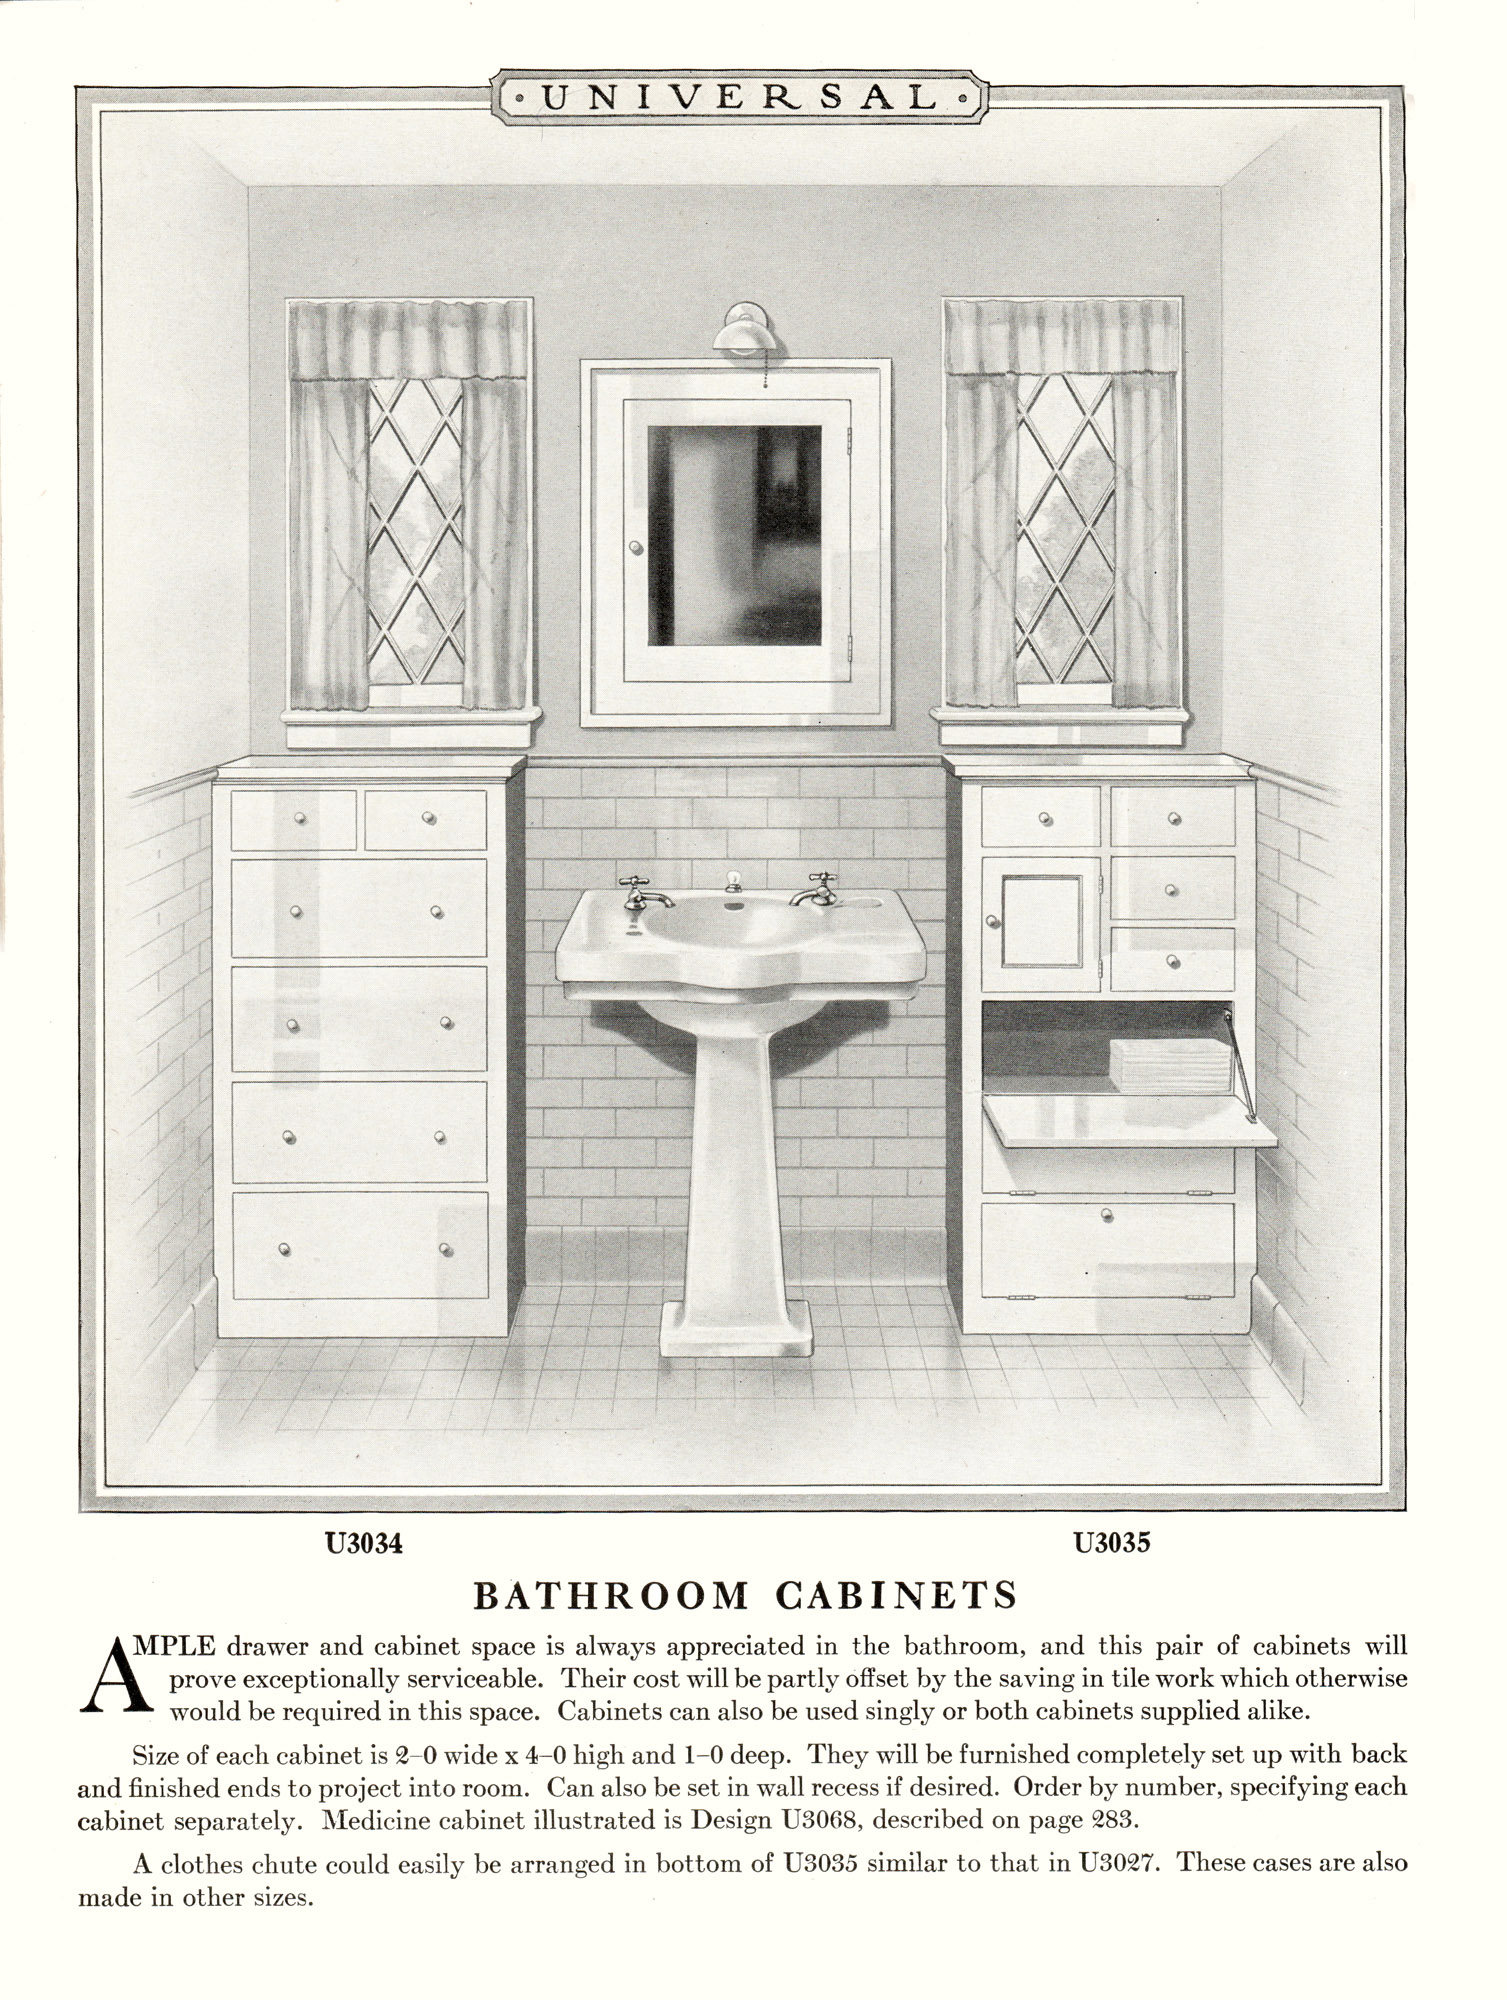 Universal Design Book No. 25 on Builder's Woodwork, Roach & Musser Co., 1927.